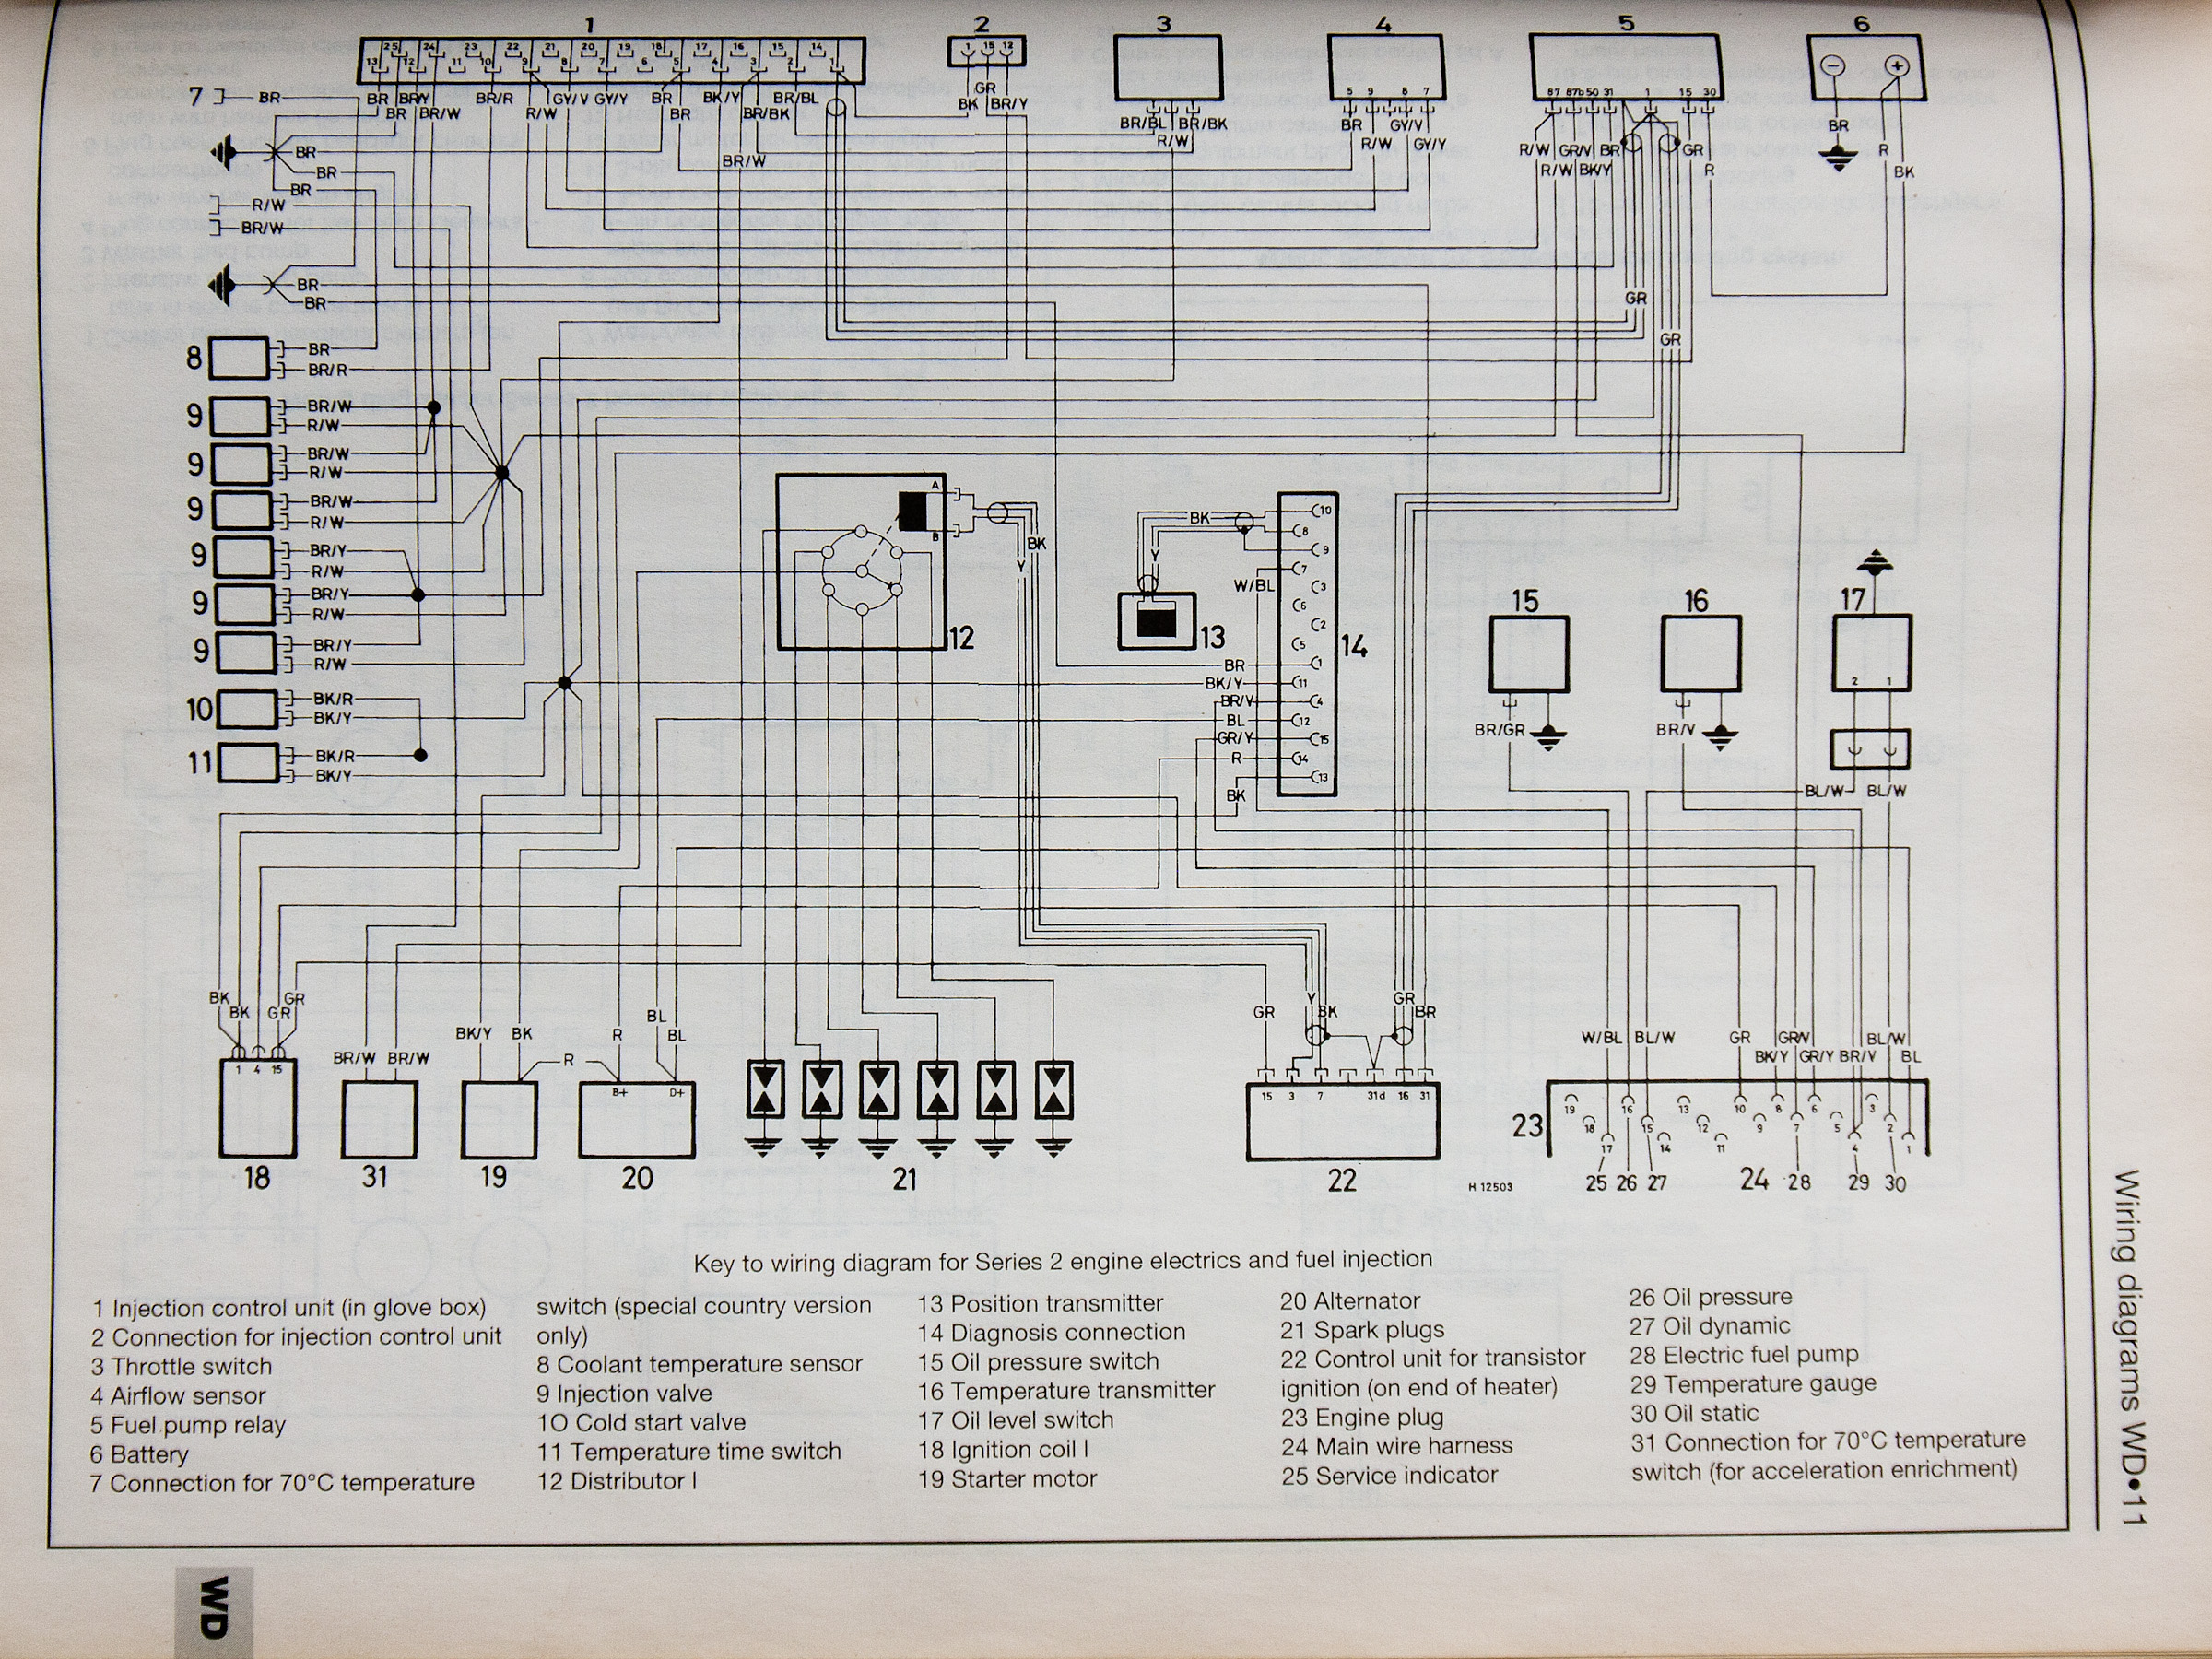 e30_ljetronic_001 e30_ljetronic_001 jpg e30 ignition wiring diagram at crackthecode.co